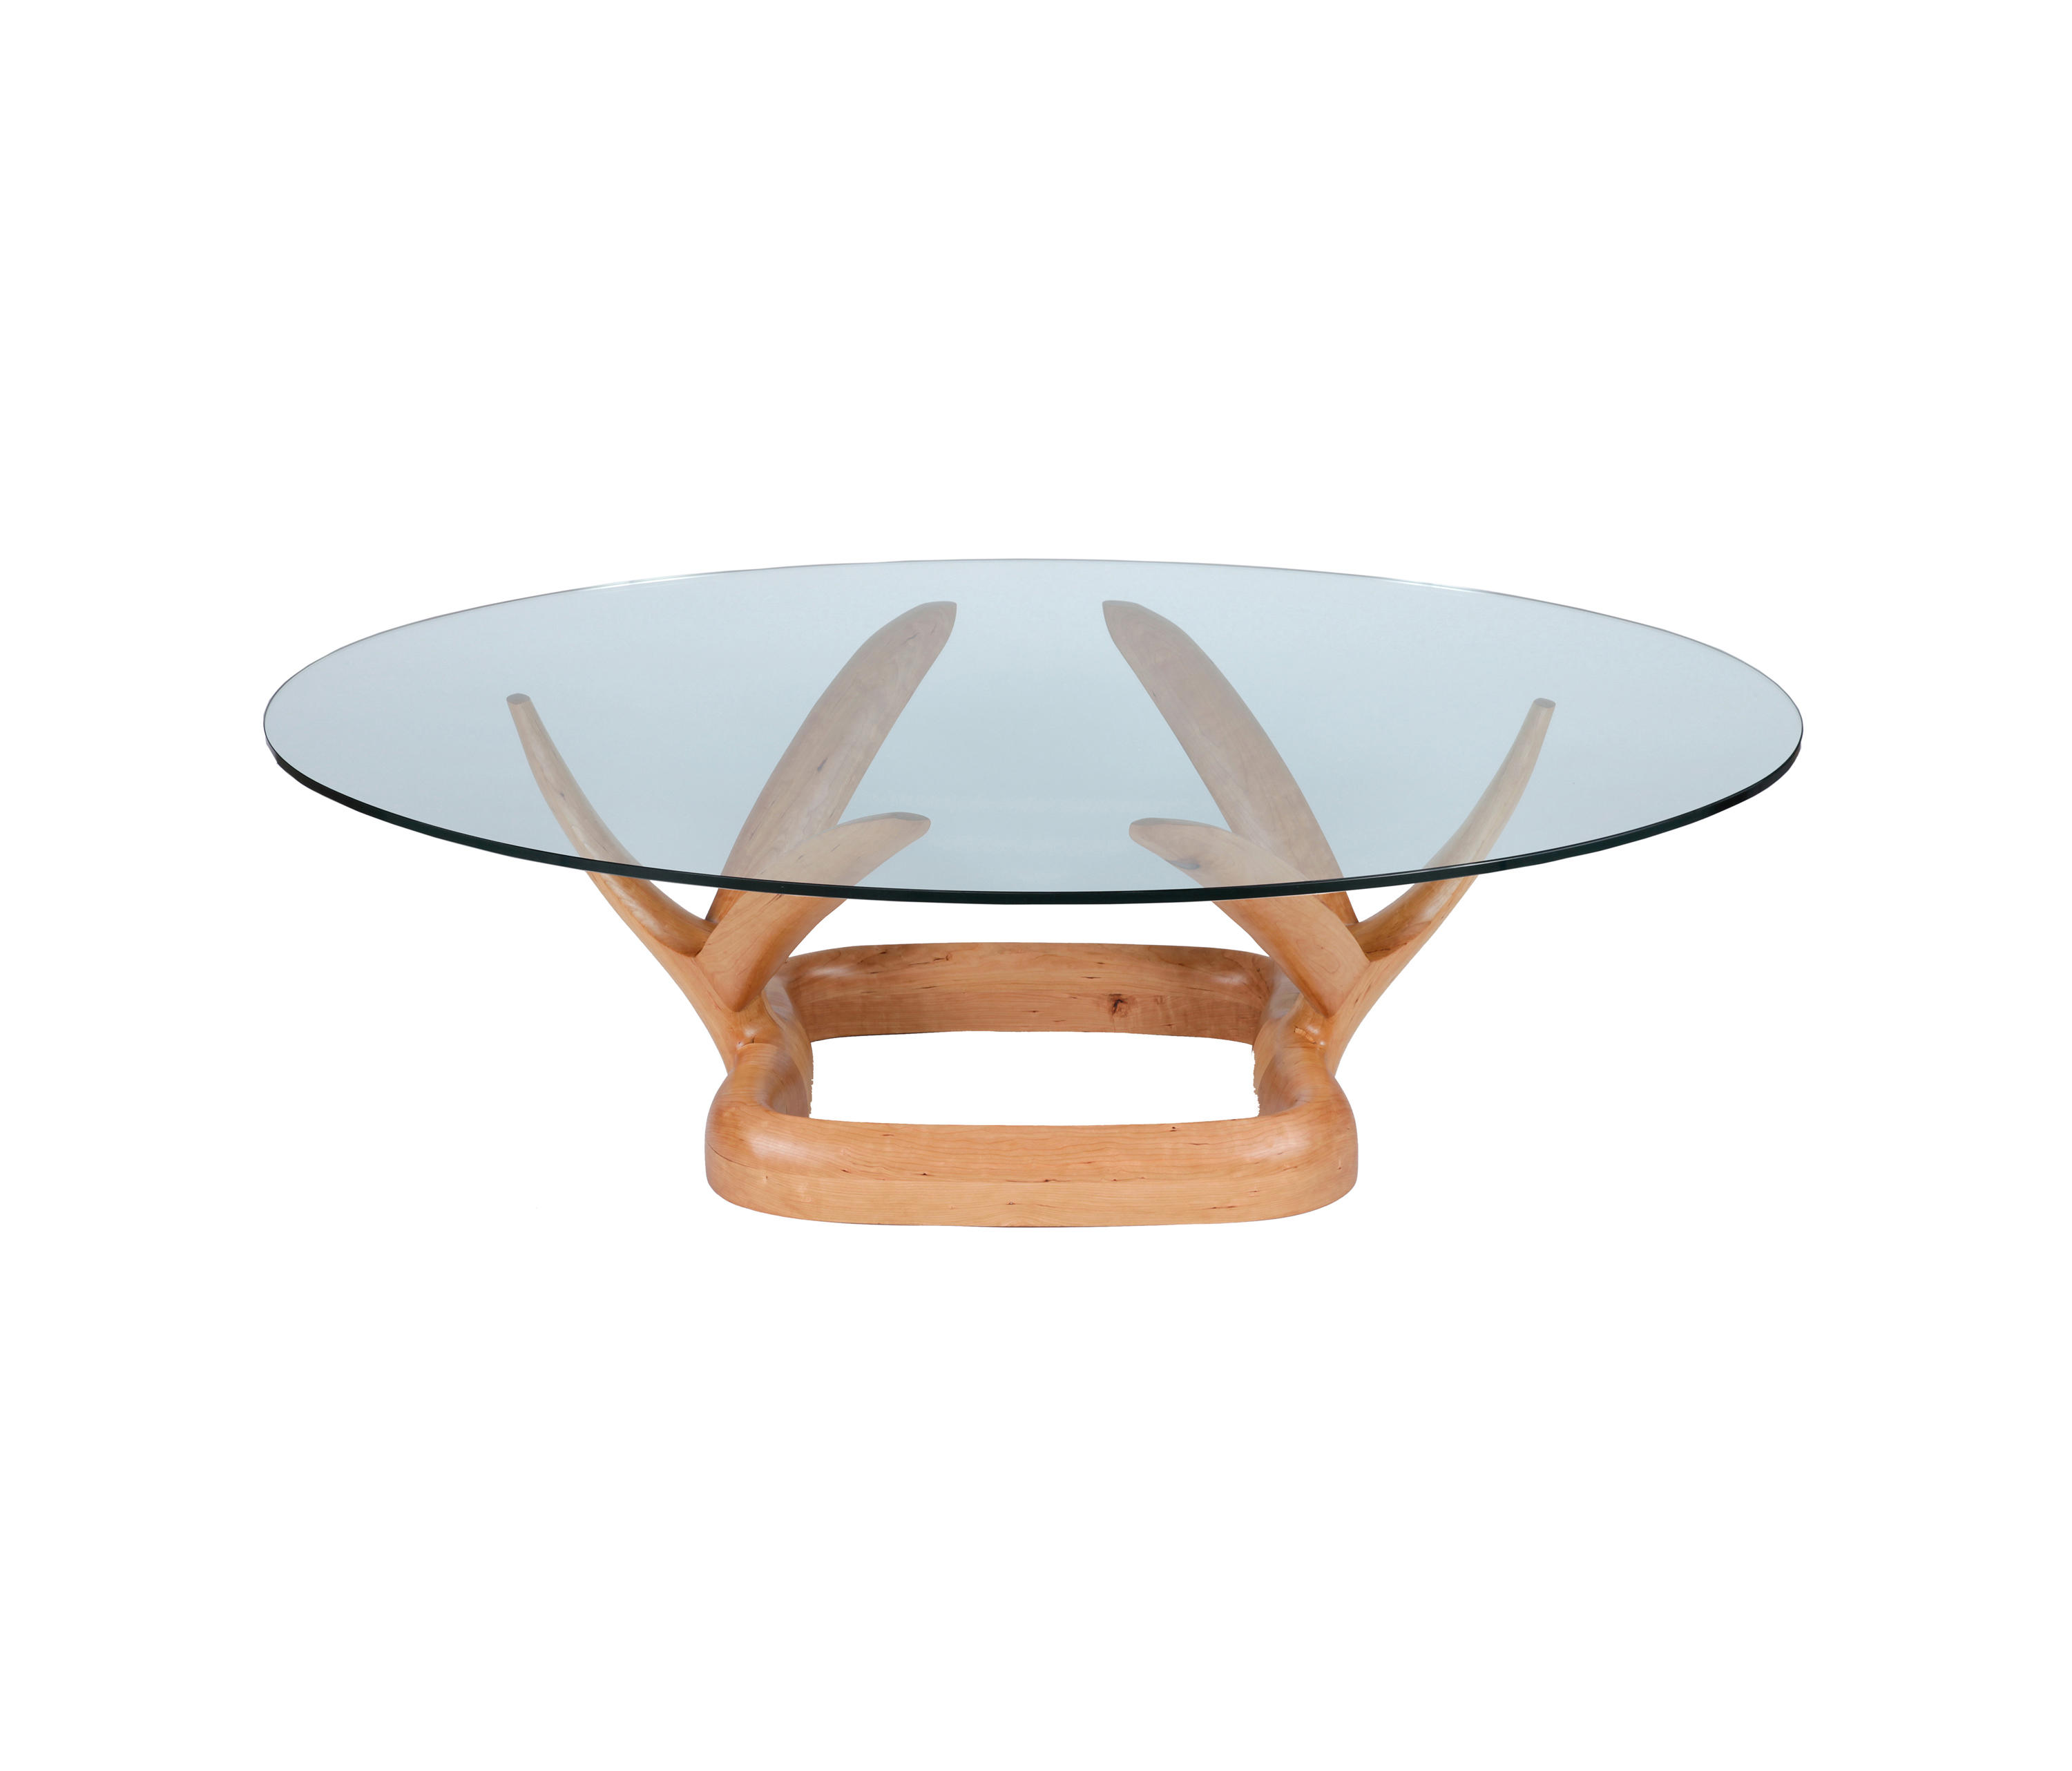 Wisteria coffee table lounge tables from brian fireman design wisteria coffee table by brian fireman design lounge tables geotapseo Image collections